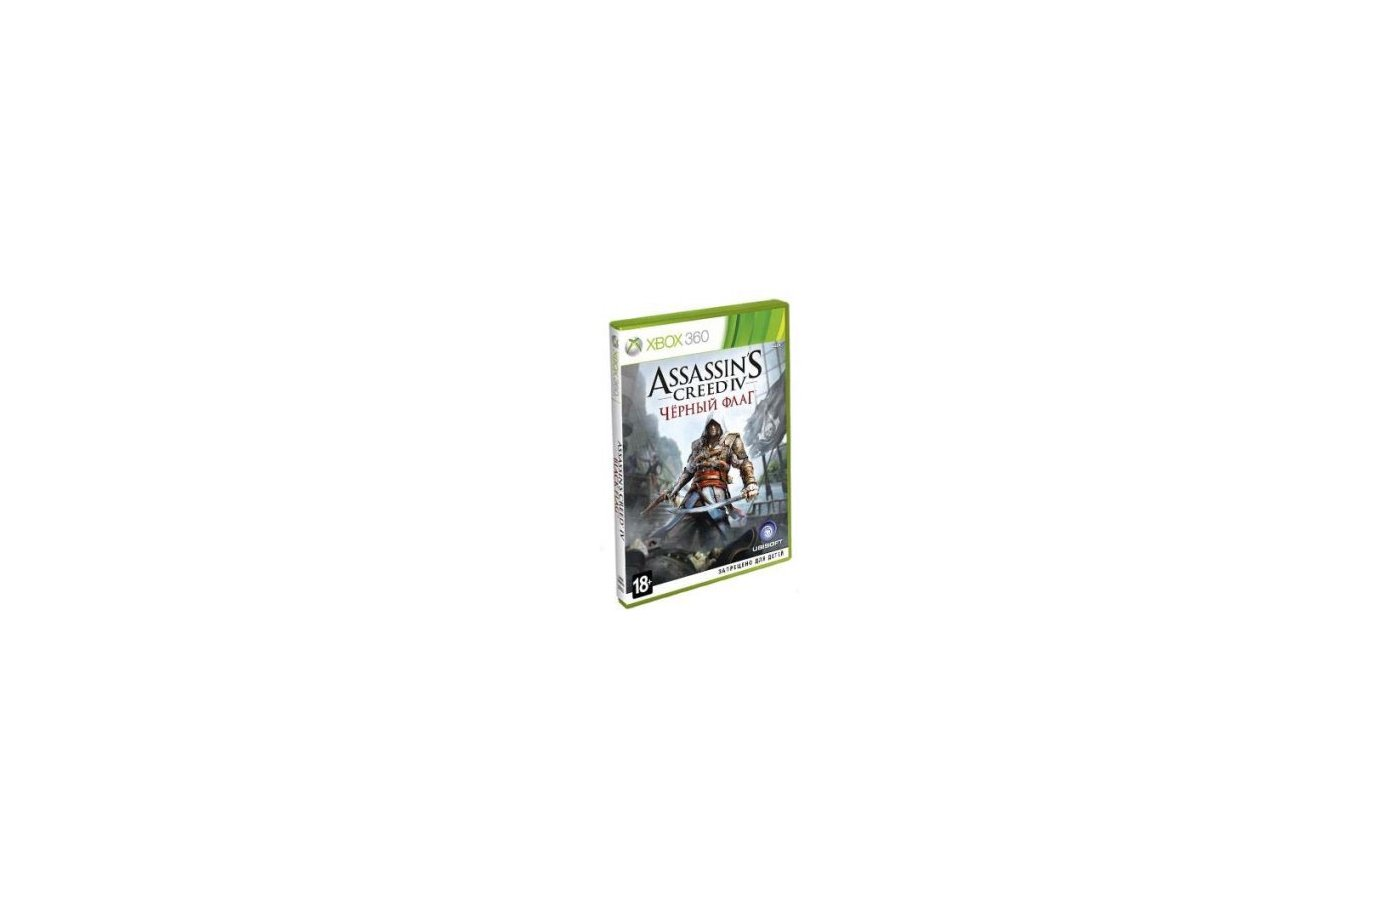 Assassins Creed IV. Черный флаг (Xbox 360 русская версия)